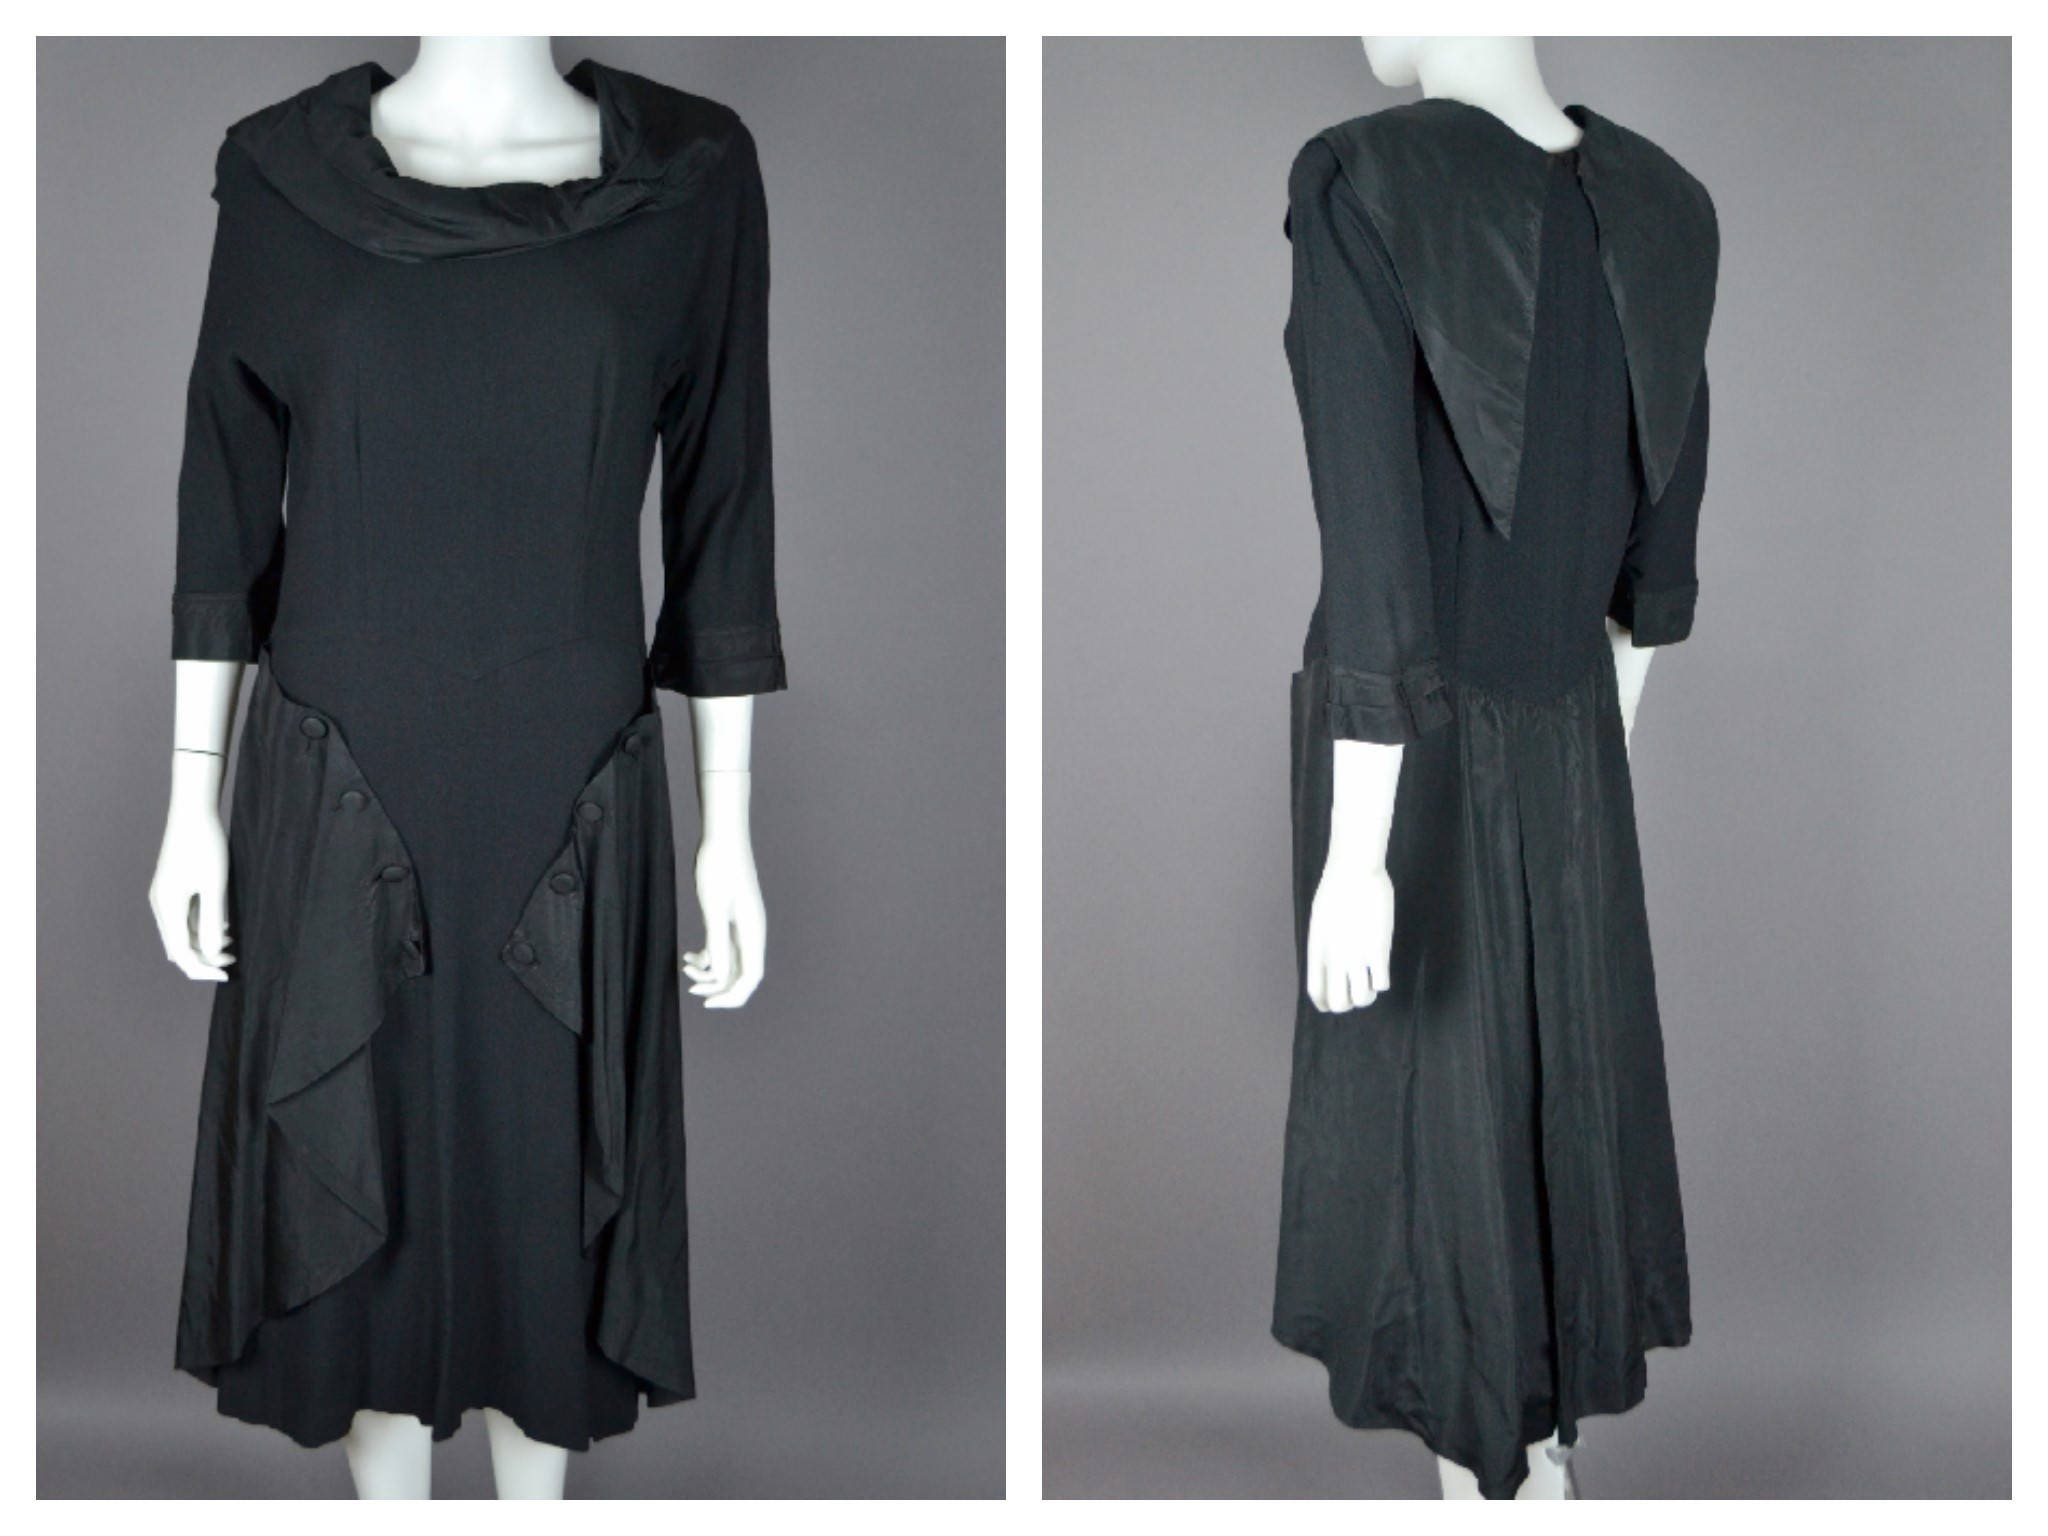 e0c5aac81d Vintage Black 1940's 40s Beverly Dale LBD Moss Crepe Coctail DRess with  Statement Skirt M L